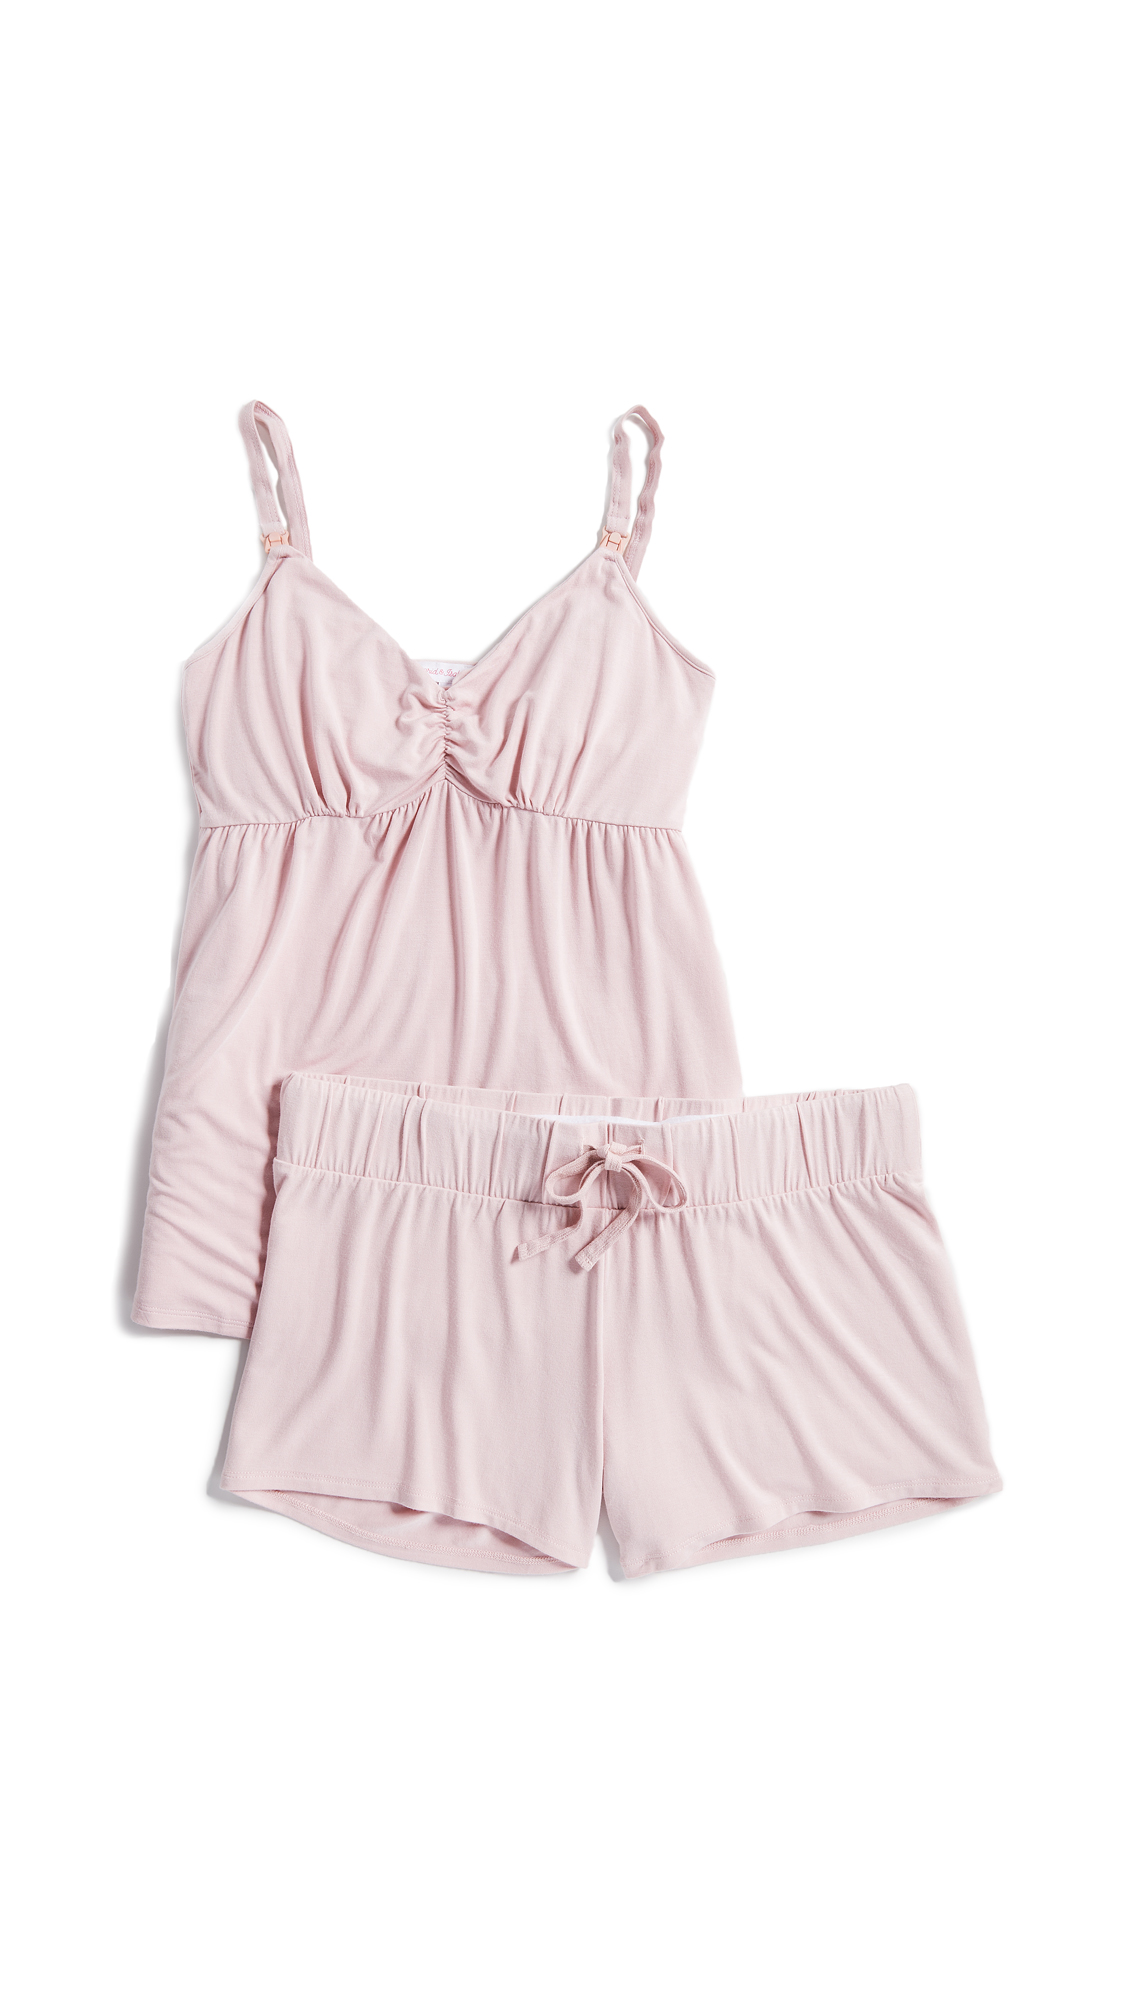 INGRID & ISABEL Maternity Pajama Set in Blush